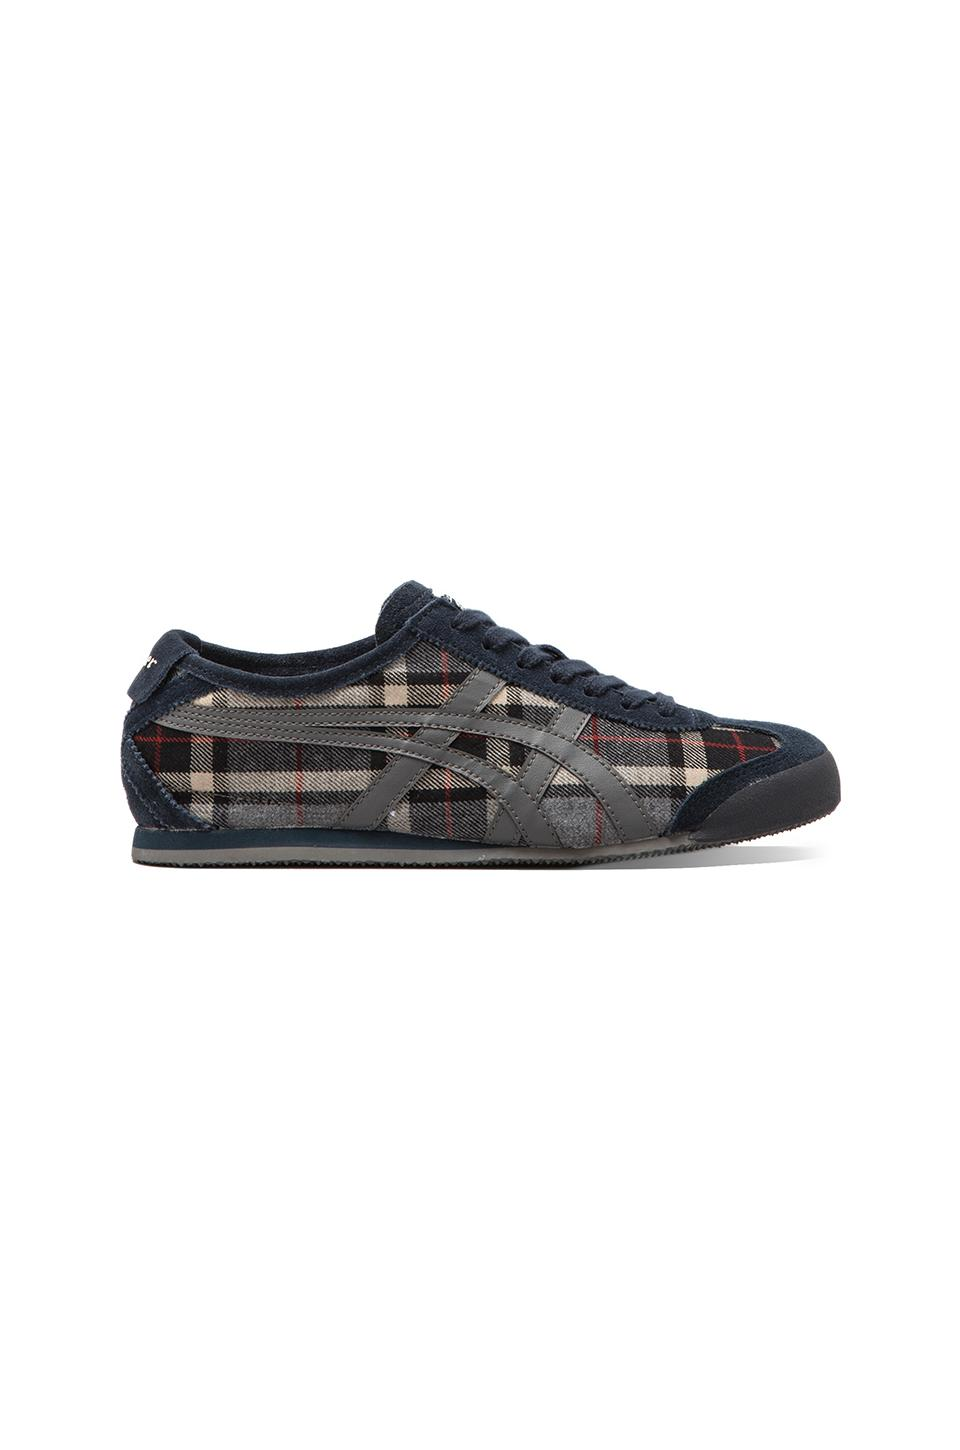 Onitsuka Tiger Mexico 66 in Grey Tartan/Dark Grey